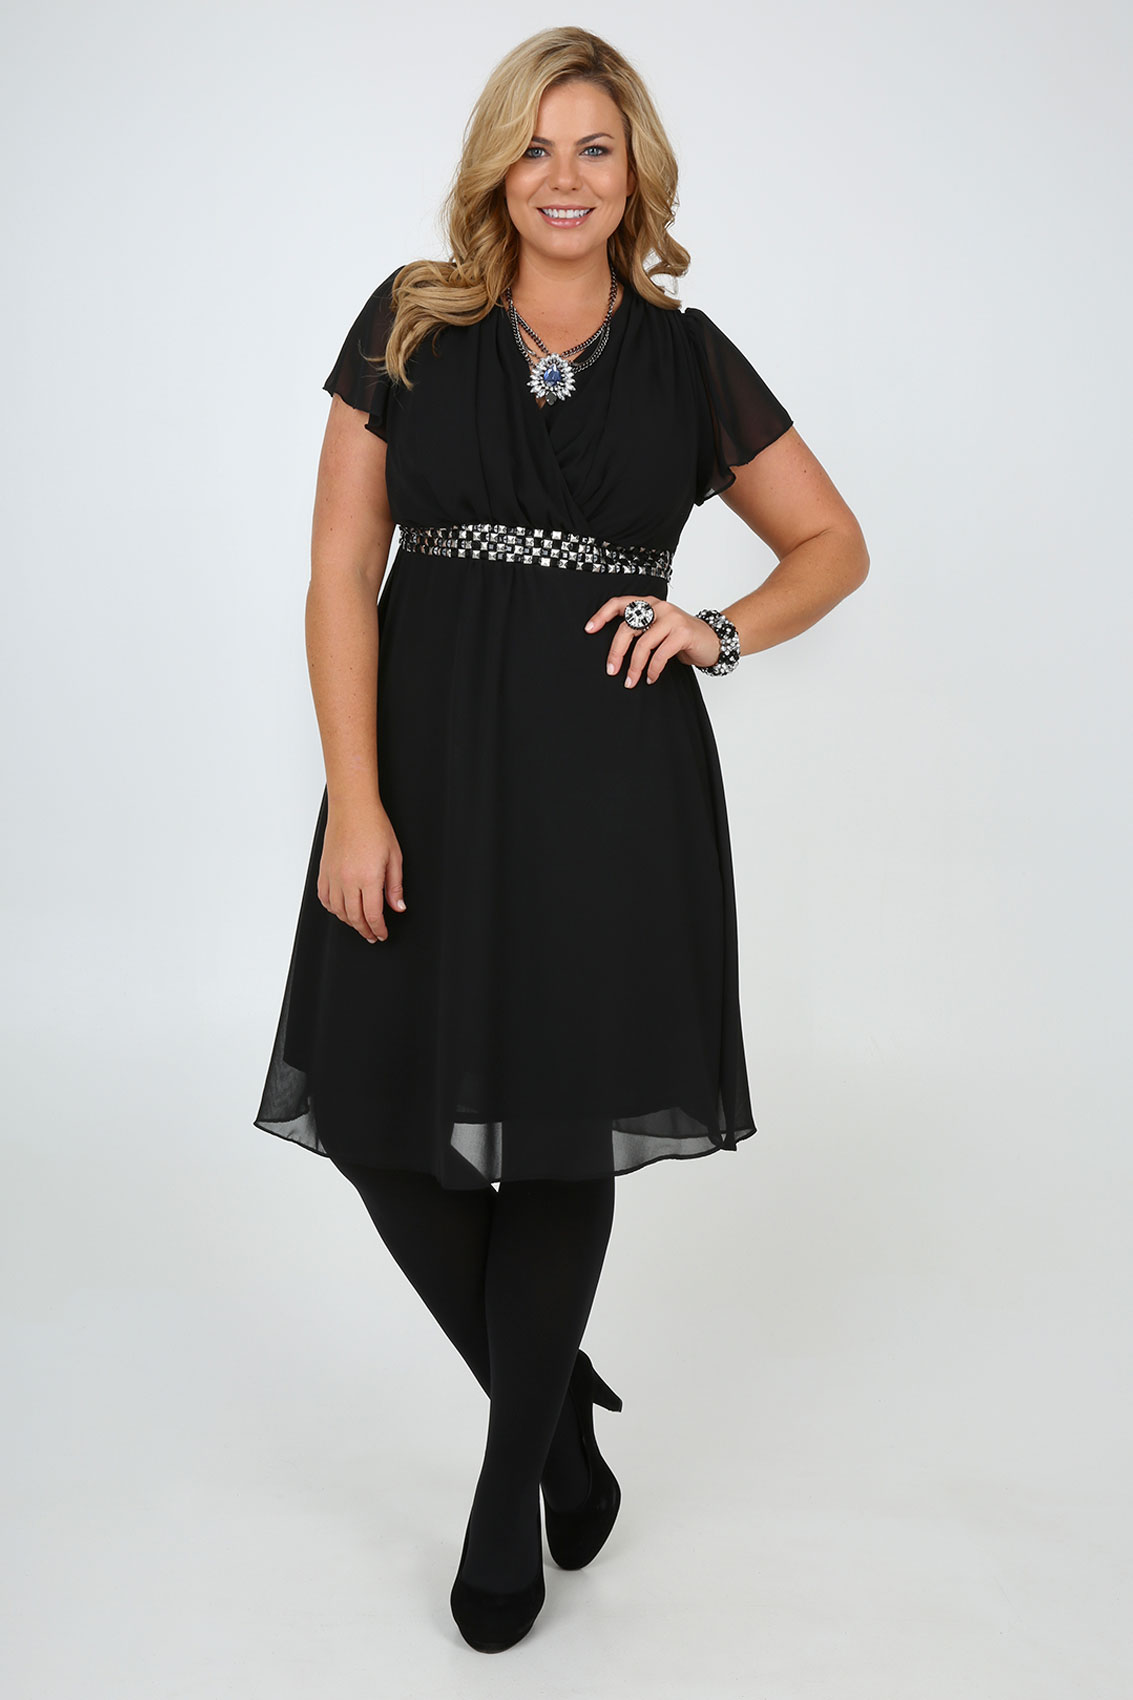 ASOS Maternity Size Guide ASOS maternity clothes are cut larger on the bust waist and hips and are designed to fit the following body measurements. Tip: Most often the maternity size which is correct for you will be the same size as you normally wear.